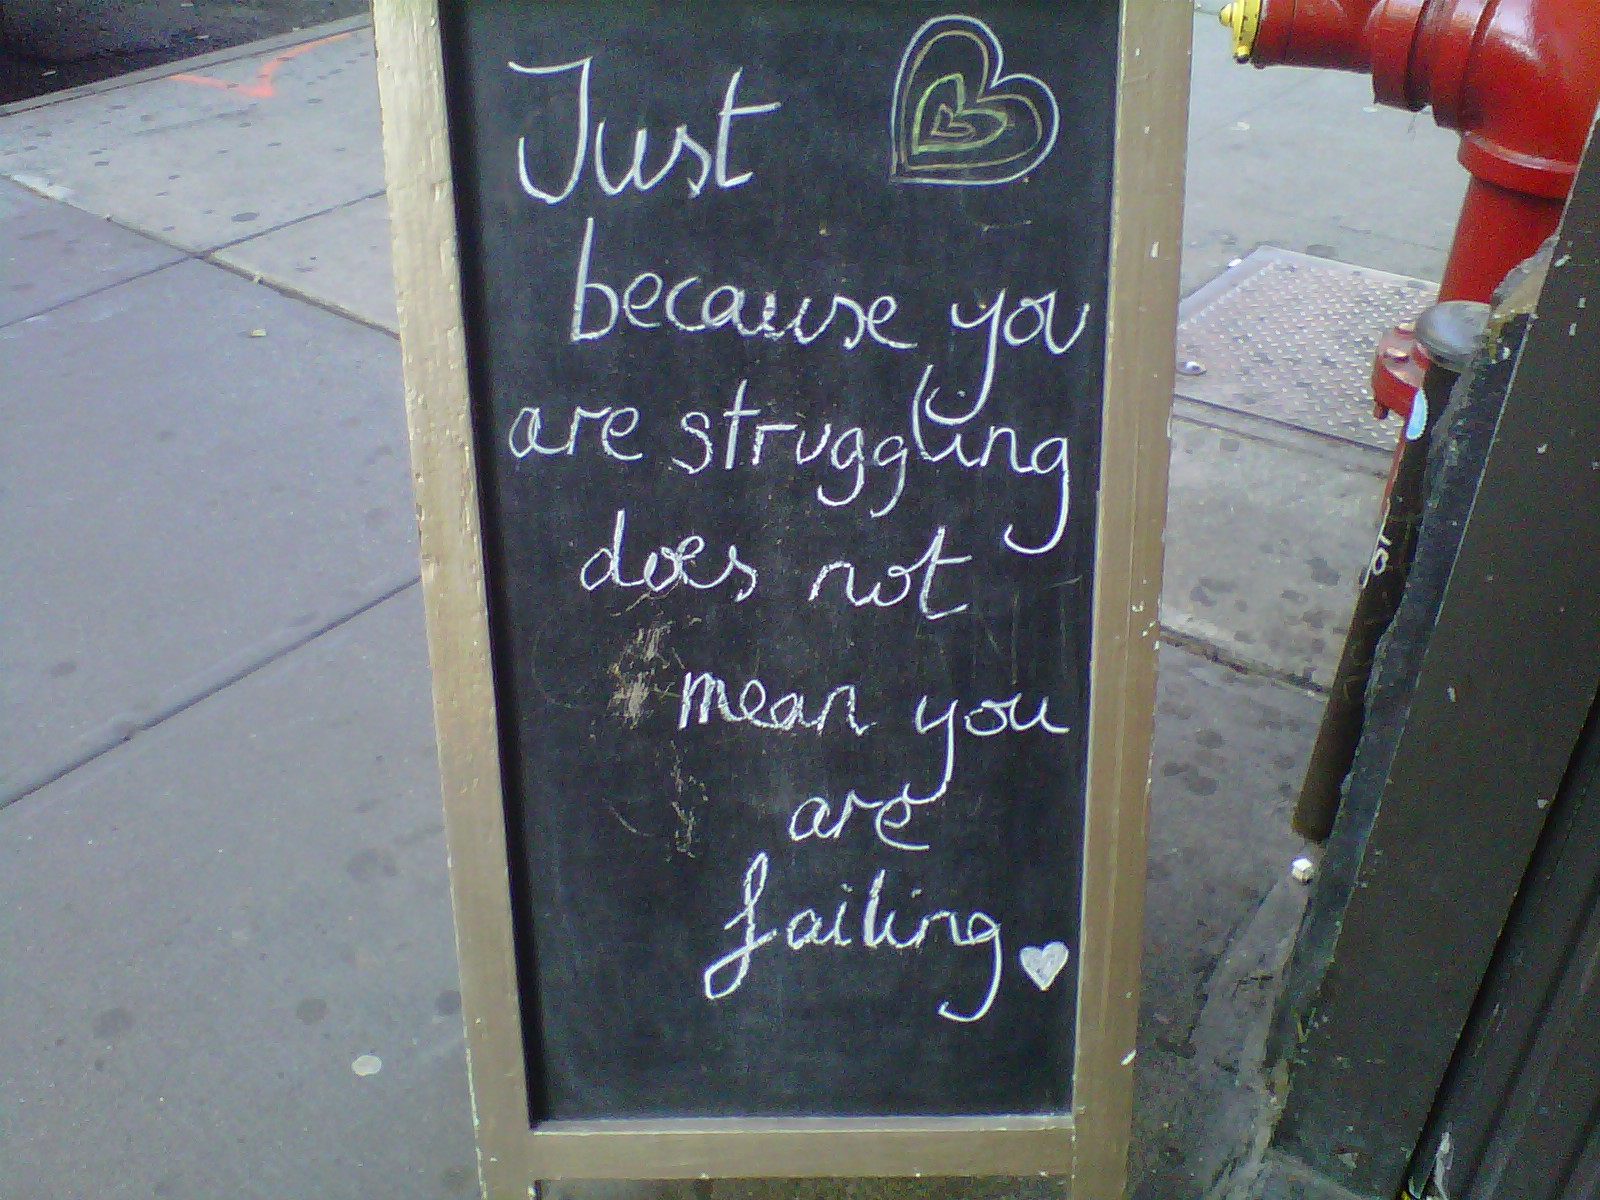 I love this sign from Bija Yoga not far from Union Square in NYC.  I think it offers compassion and kindness to all of us in the midst of a struggle.